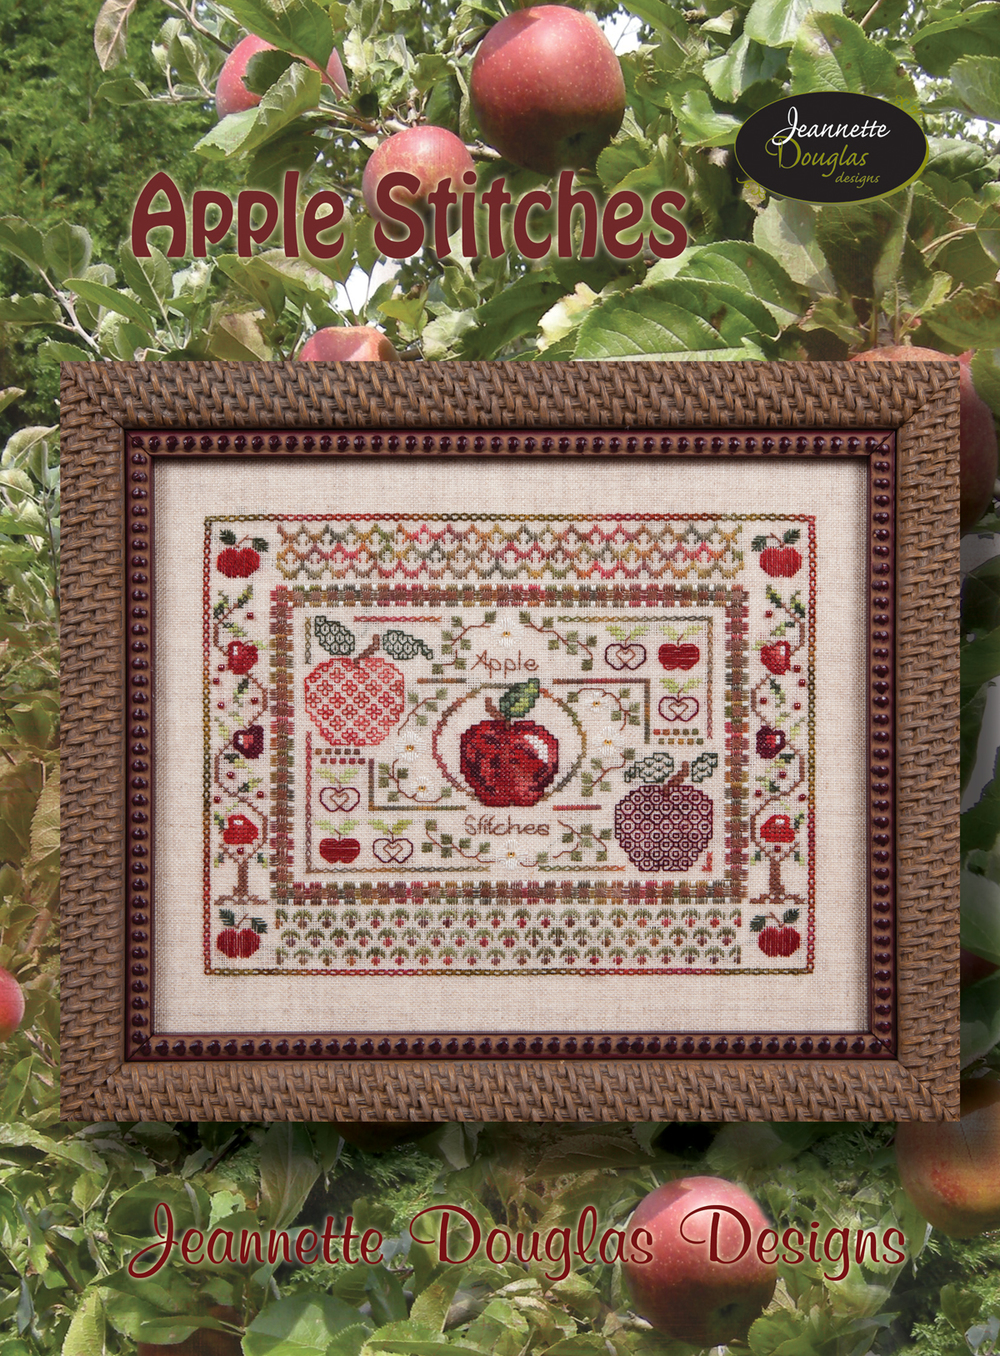 Apple-Stitches-cover-RGB-web.jpg